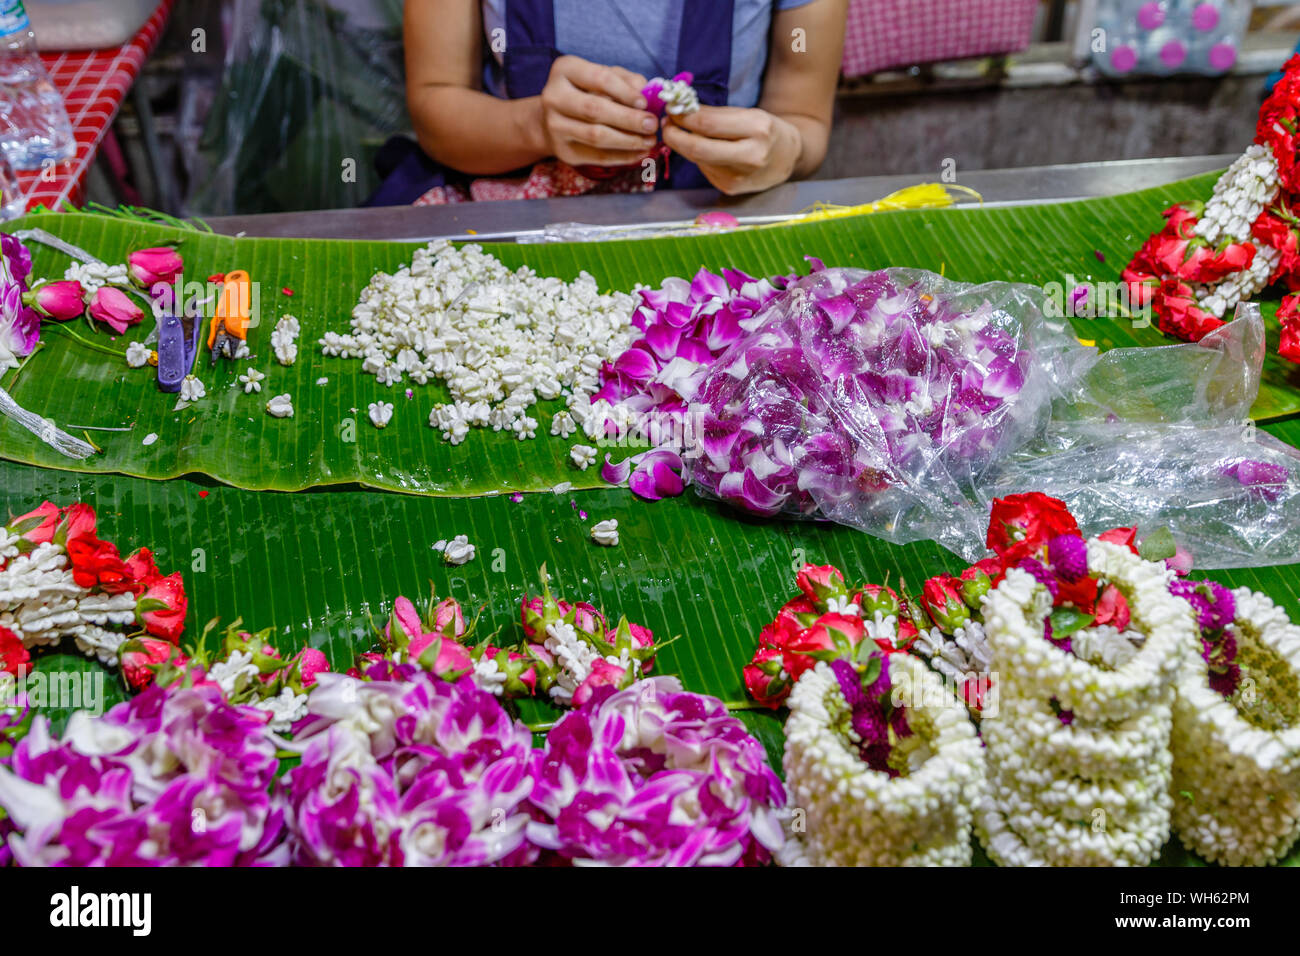 Woman making Phuang malai, traditional Thai flower garland offerings with jasmine and orchids at Pak Khlong Talat, Bangkok flower market. Thailand. Stock Photo